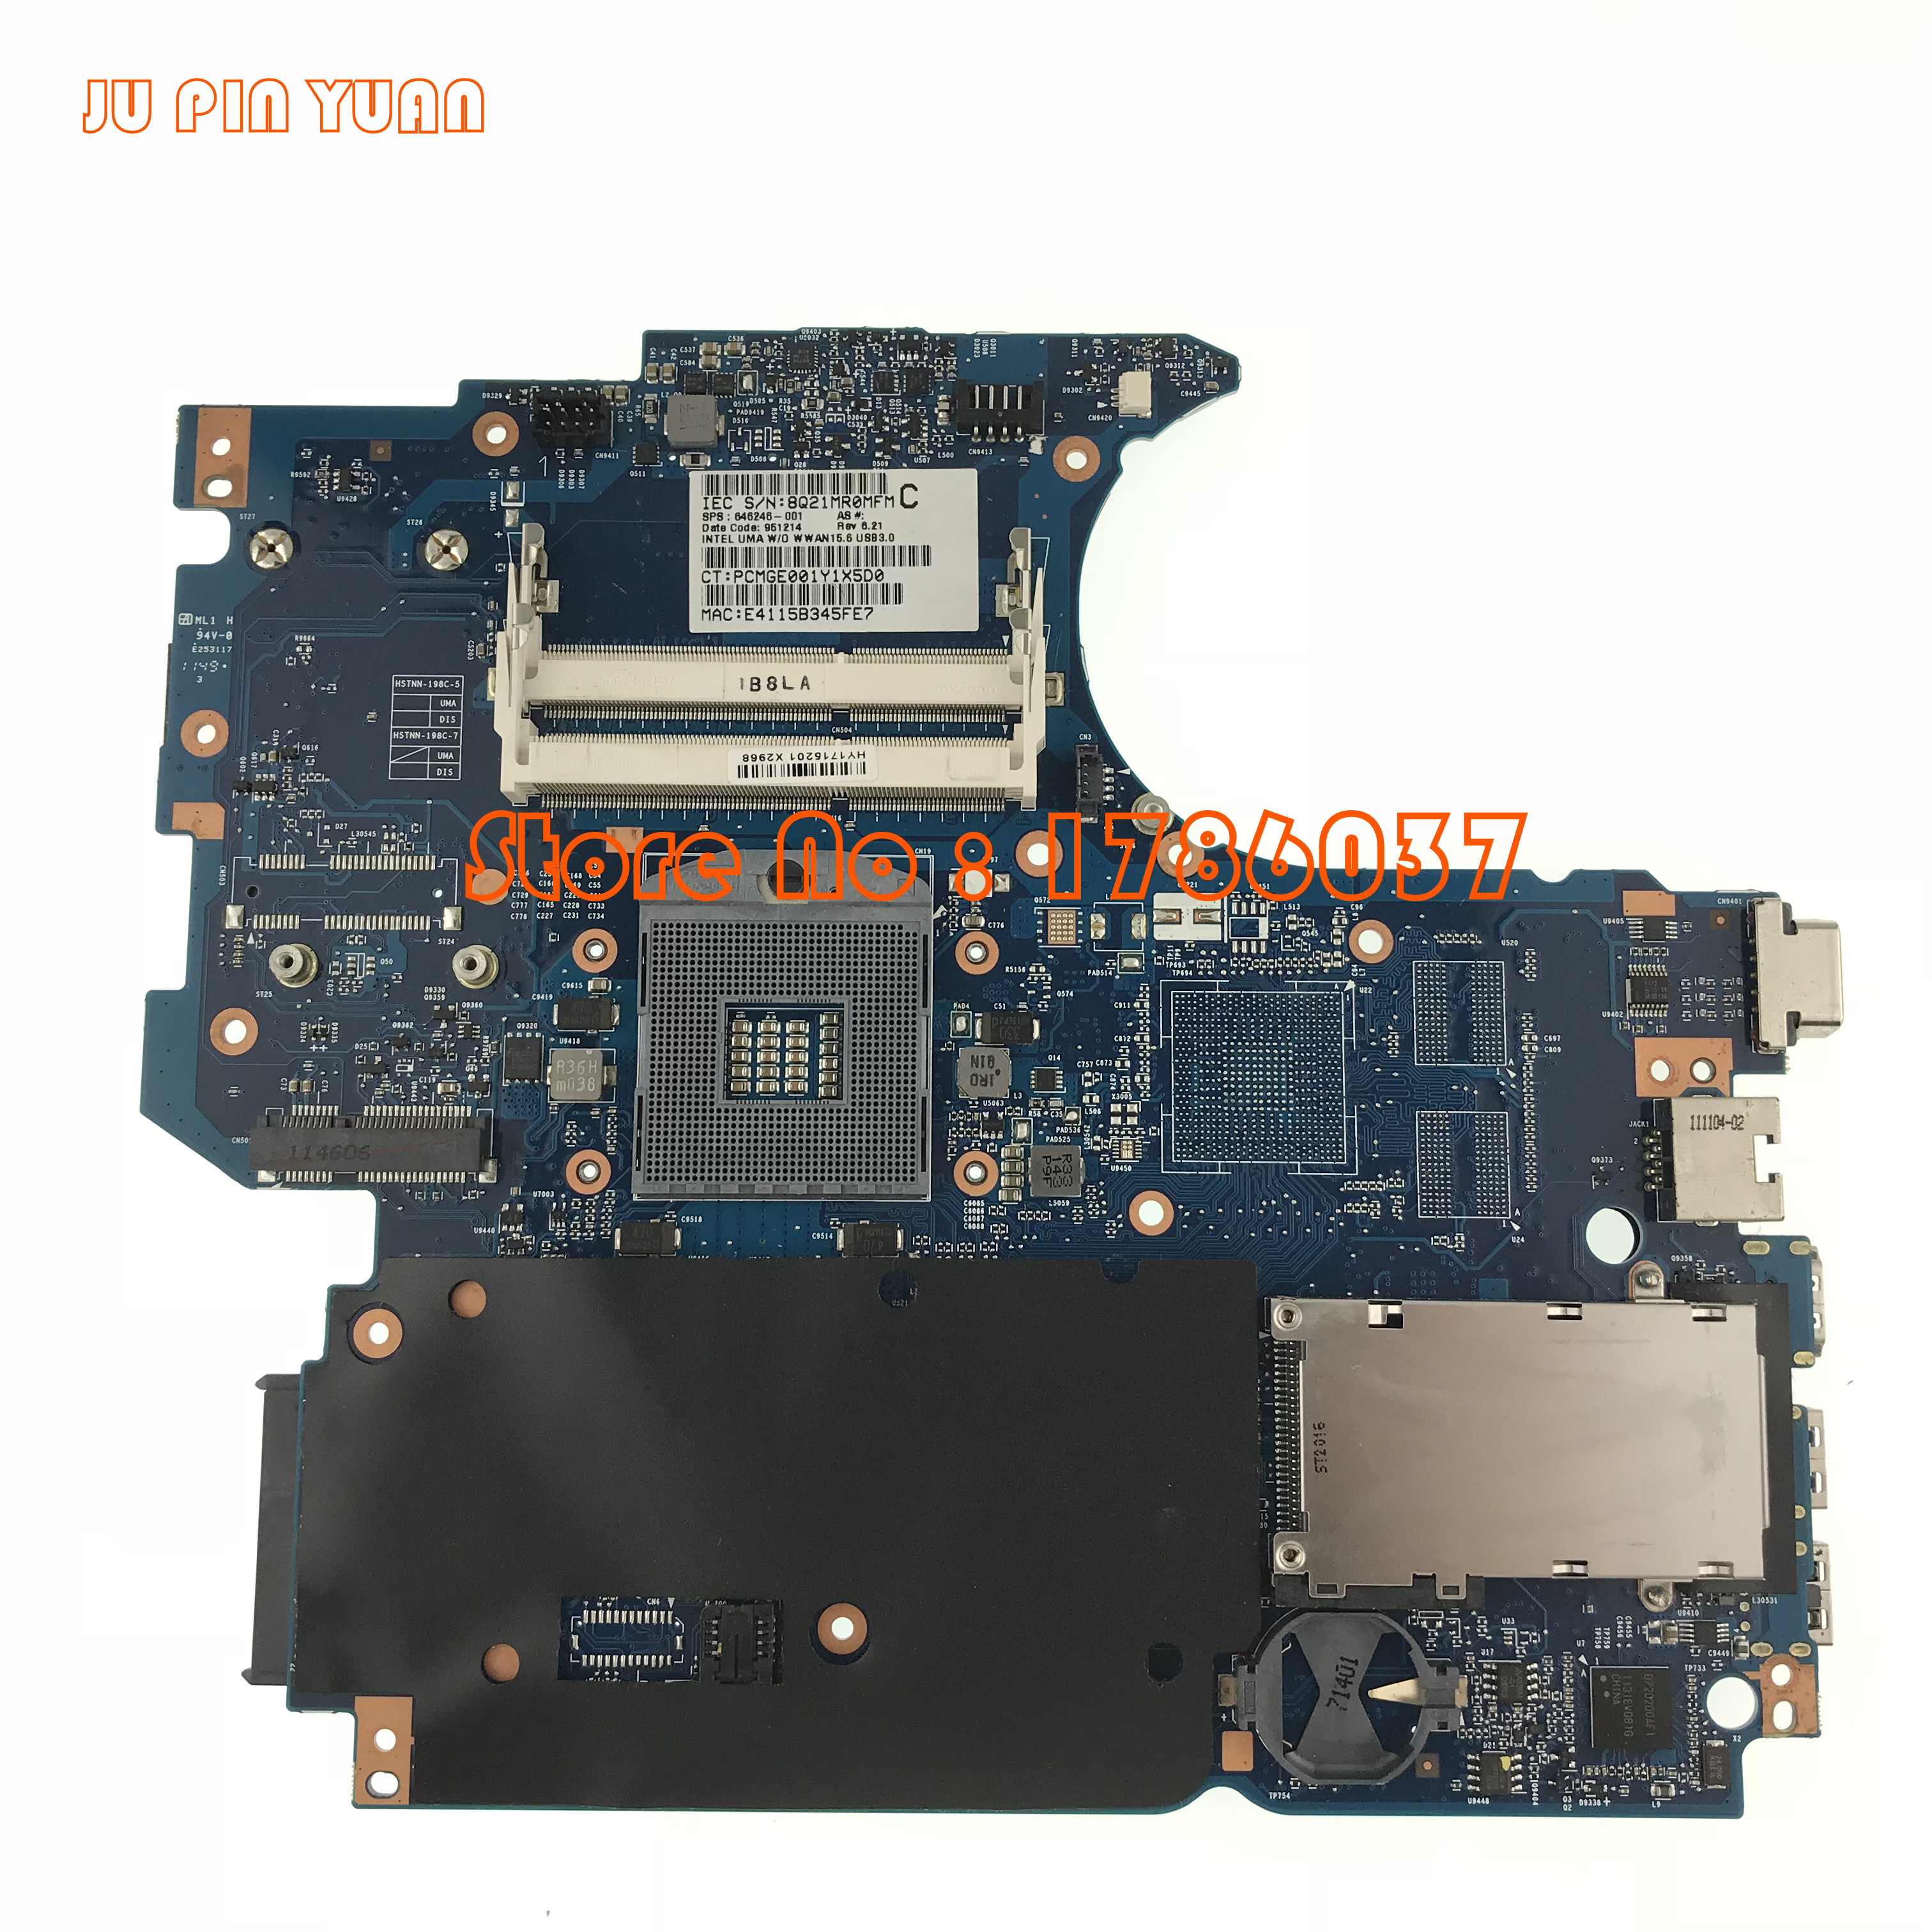 JU PIN YUAN 646246 001 Mainboard for HP 4530S 4730S Laptop motherboard HM65 All functions fully